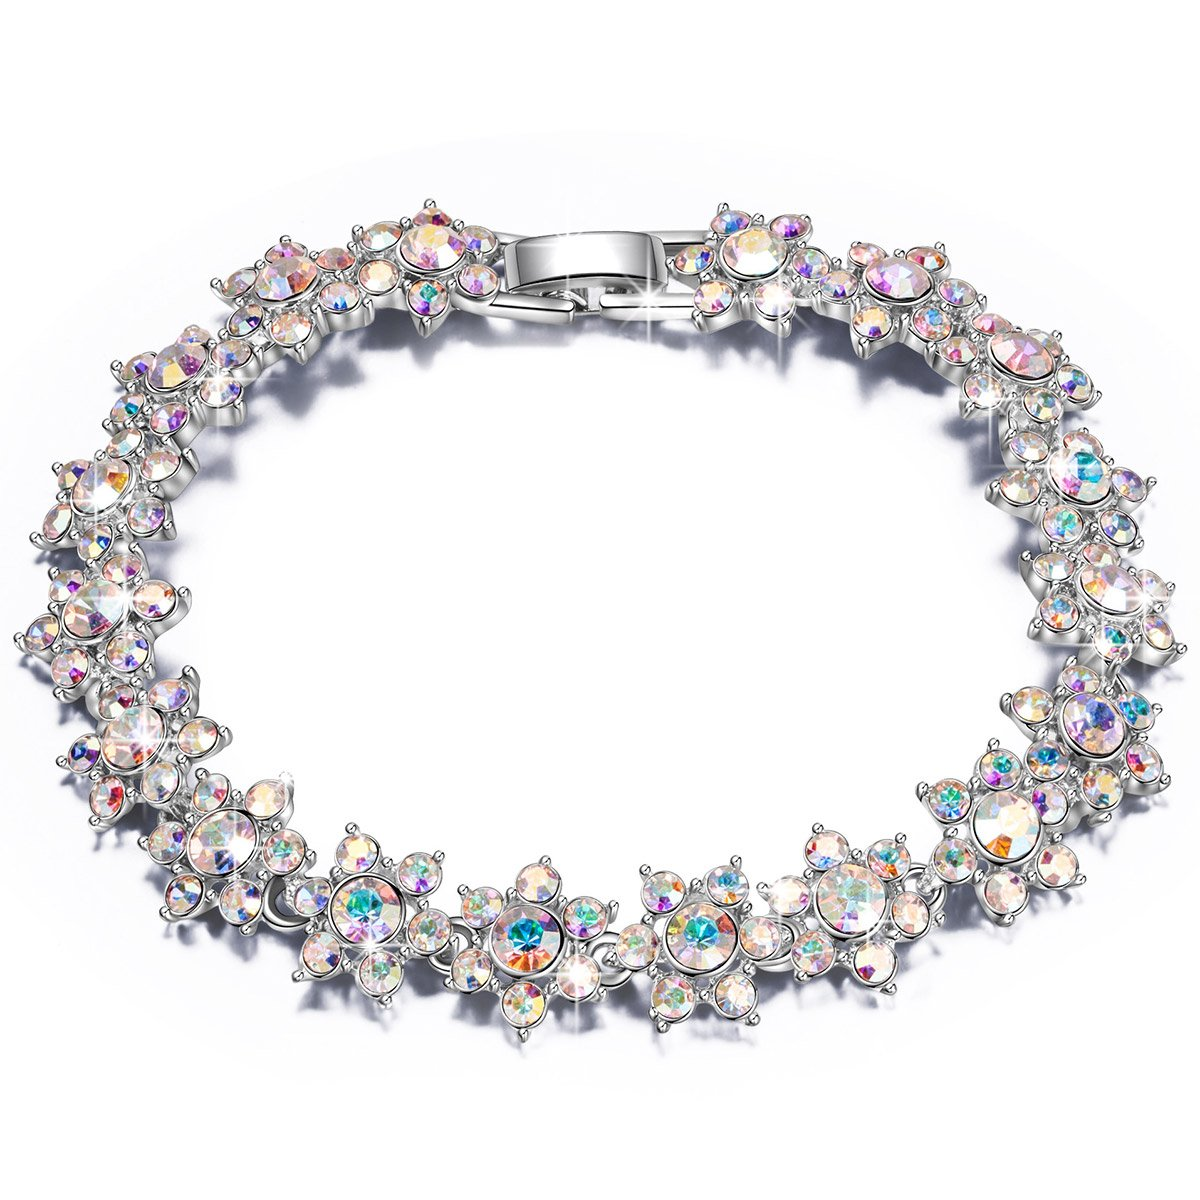 QIANSE ''Princess Charlotte Austrian Crystals Tennis Bracelet Fashion Jewelry for Women Bracelet for Women Birthday Gifts for Girls Girlfriend Daughter